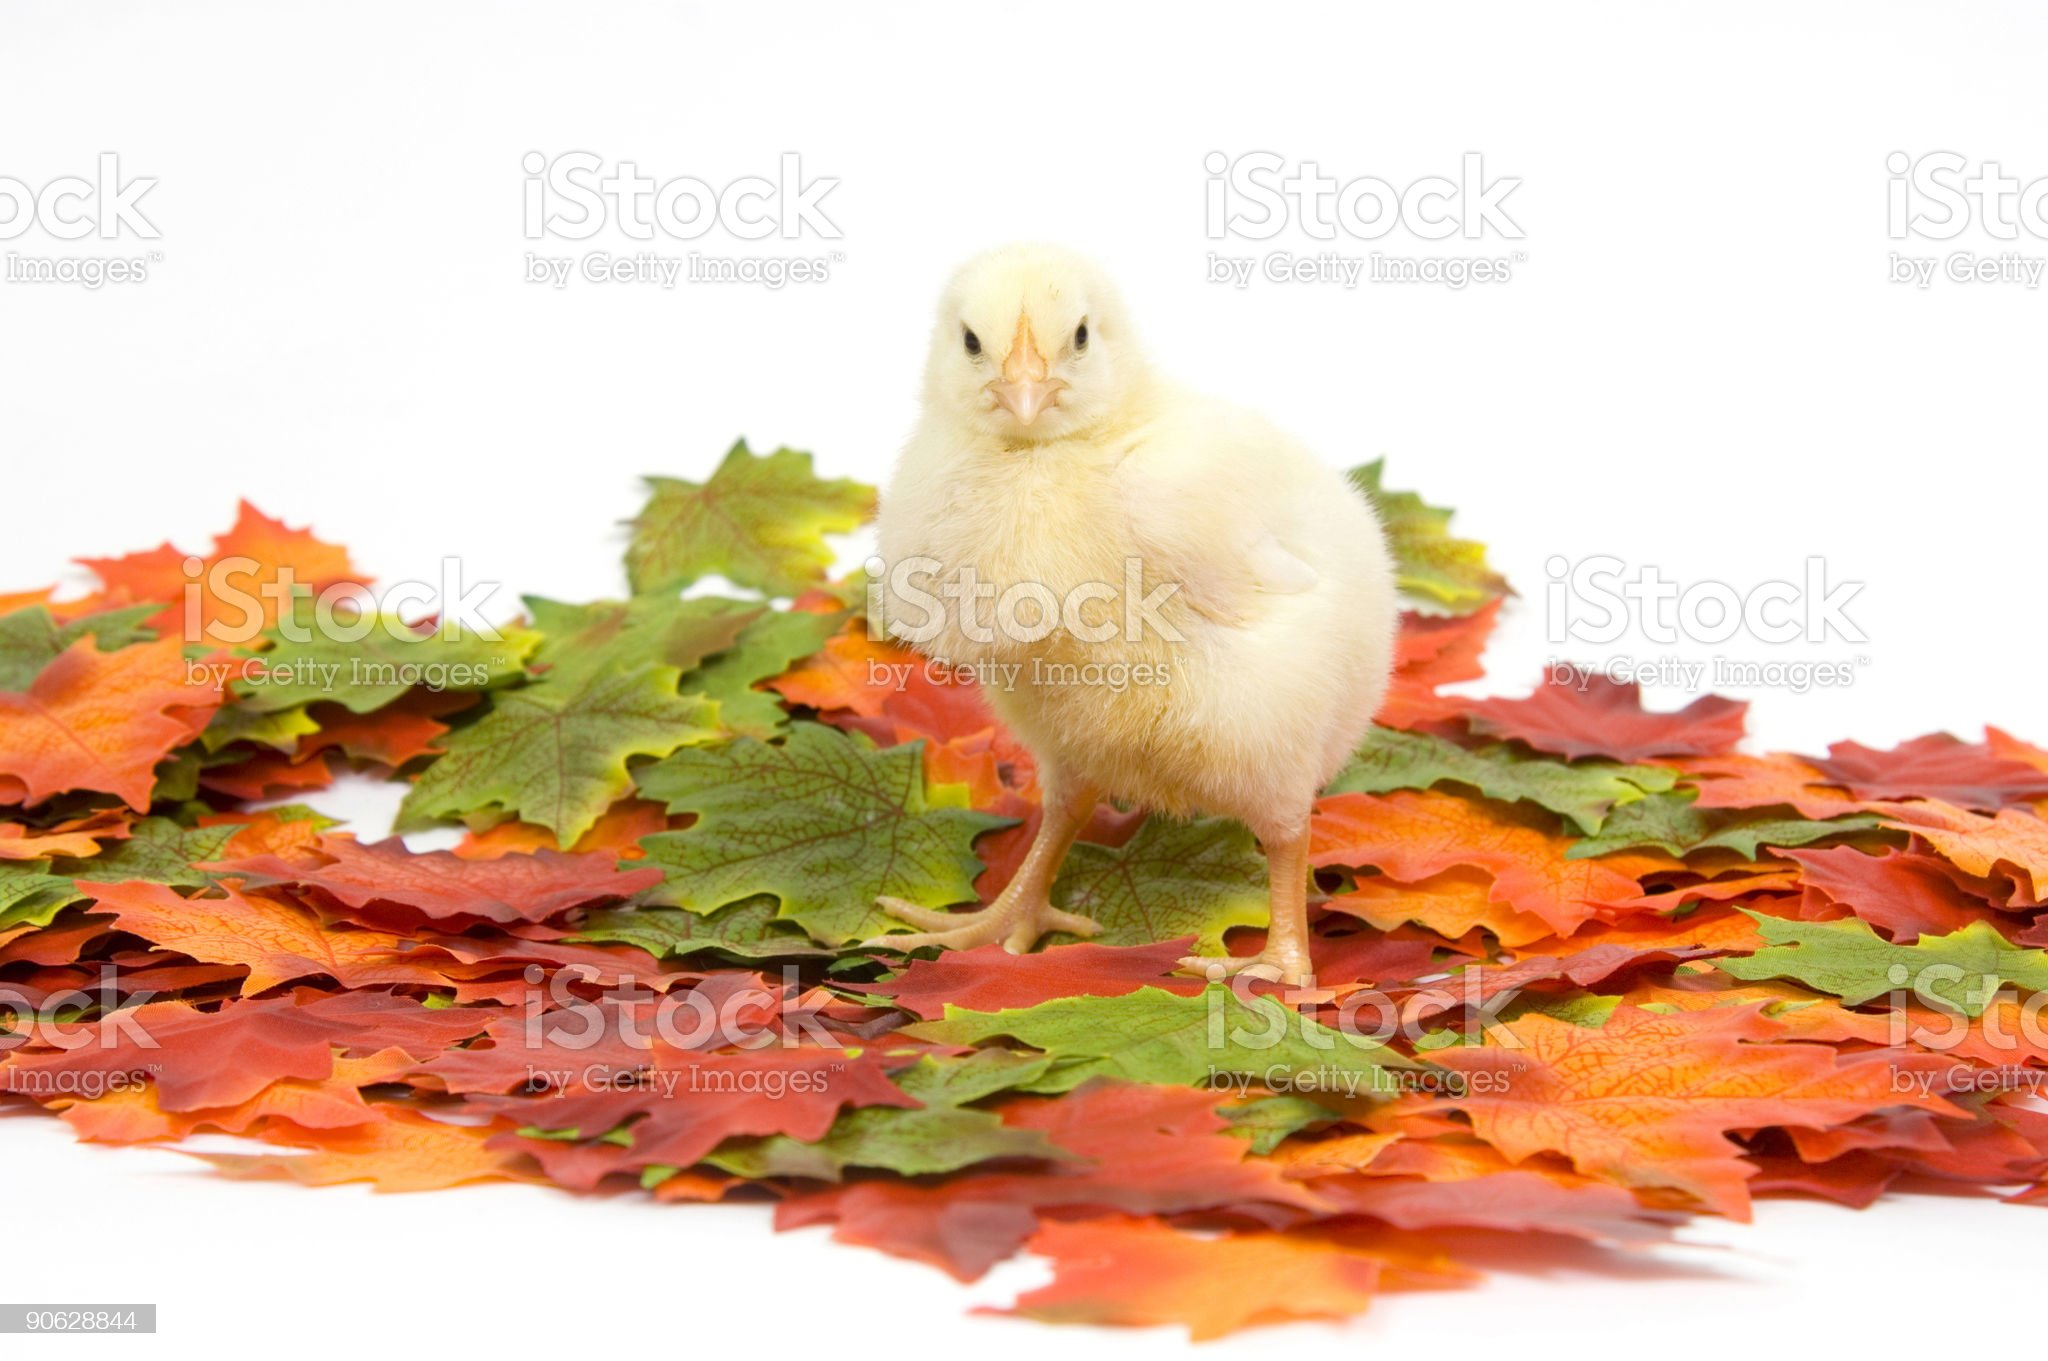 baby chicks in fall leaves royalty-free stock photo